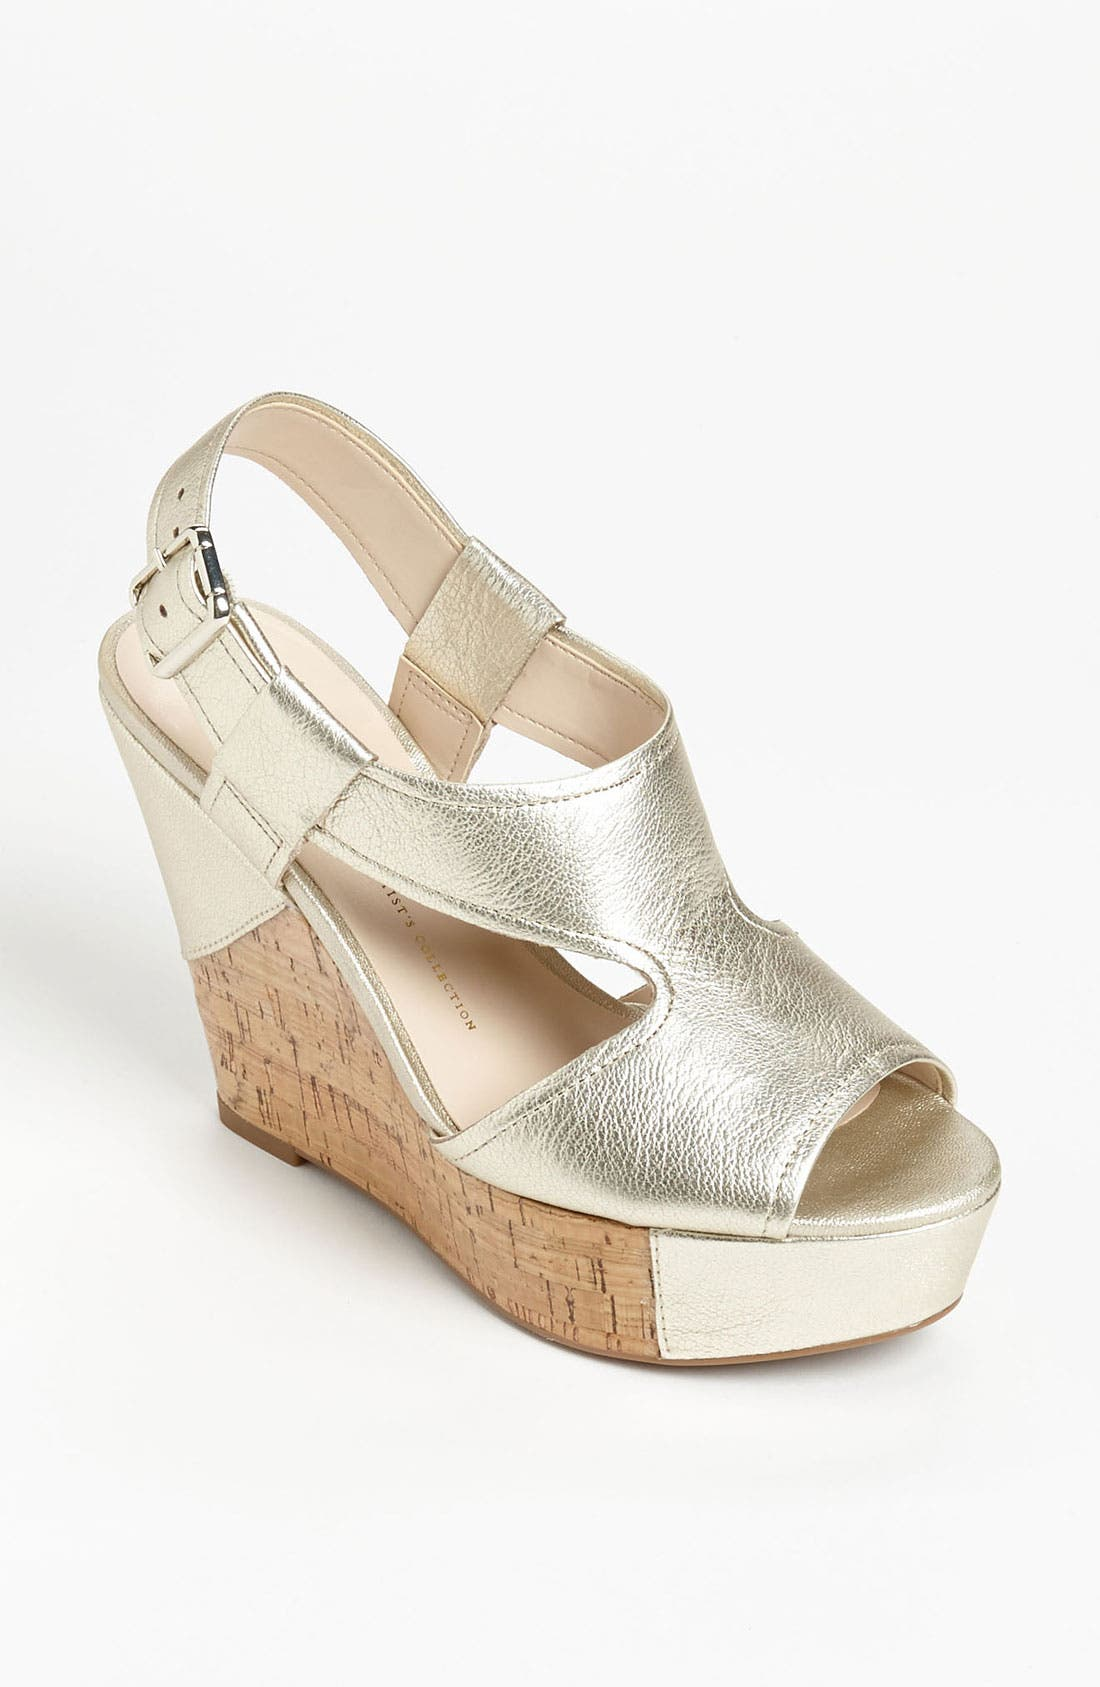 Alternate Image 1 Selected - Franco Sarto 'Xenon' Wedge Sandal (Special Purchase)